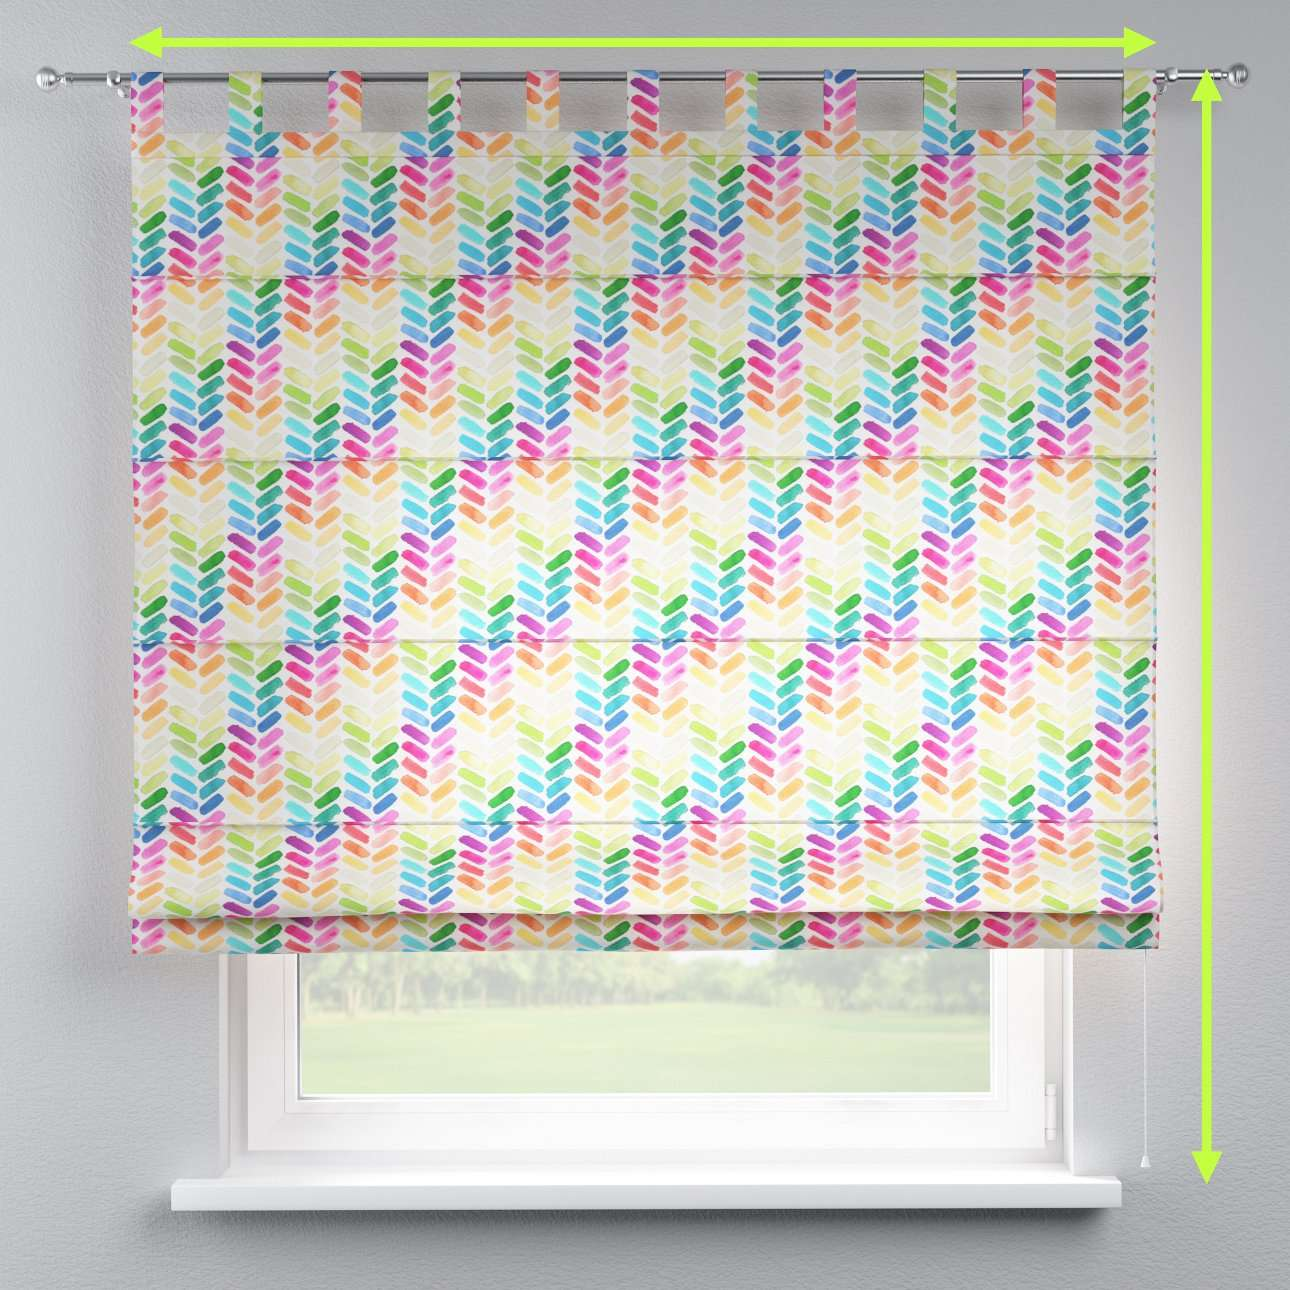 Verona tab top roman blind in collection New Art, fabric: 140-25